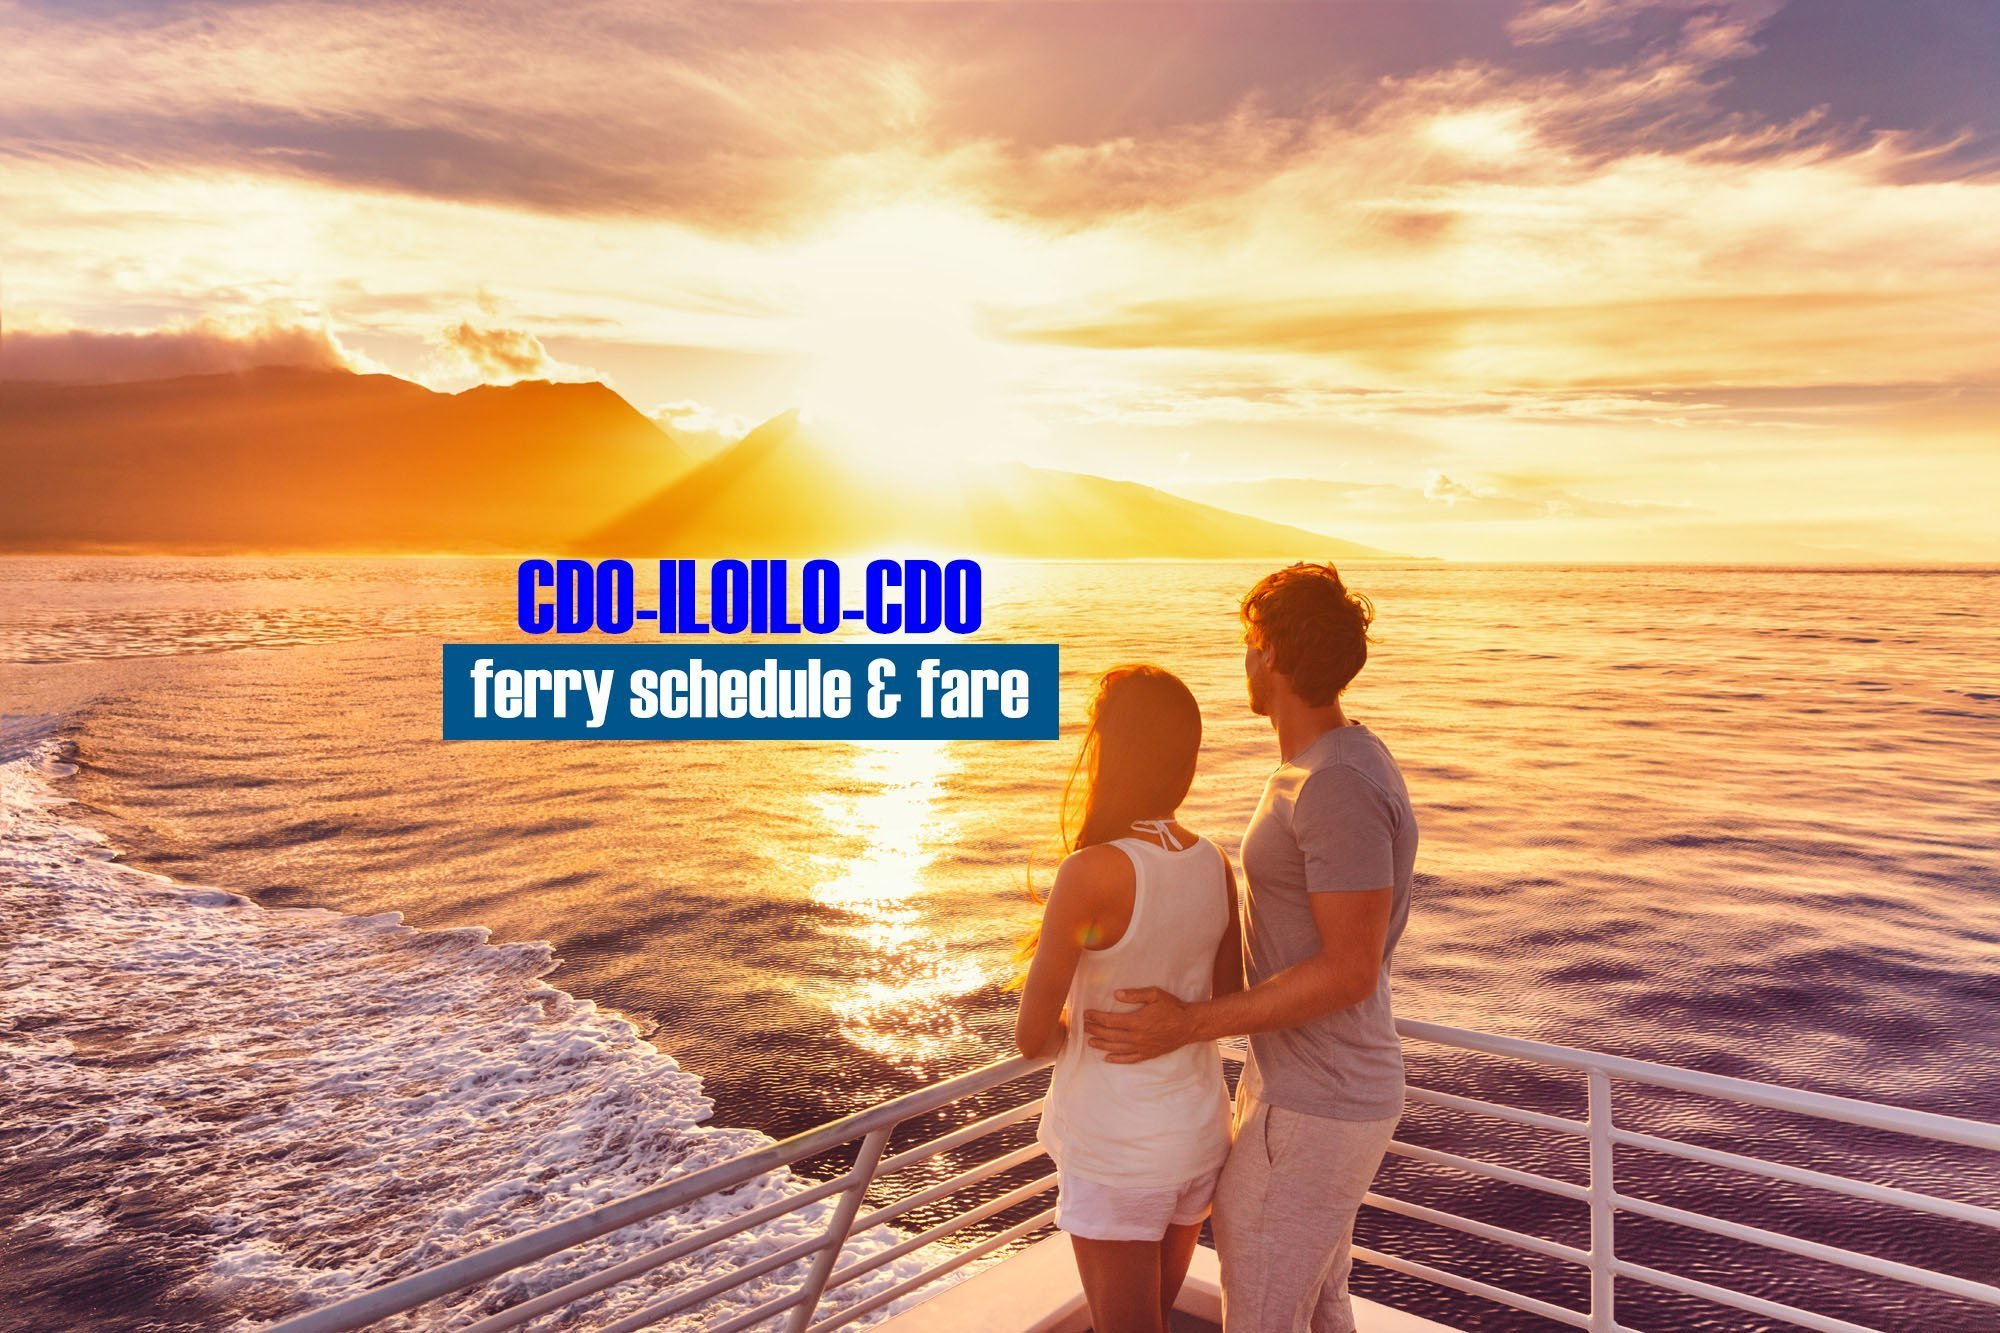 Cagayan de Oro to Iloilo: 2019 Boat Schedule and Fare